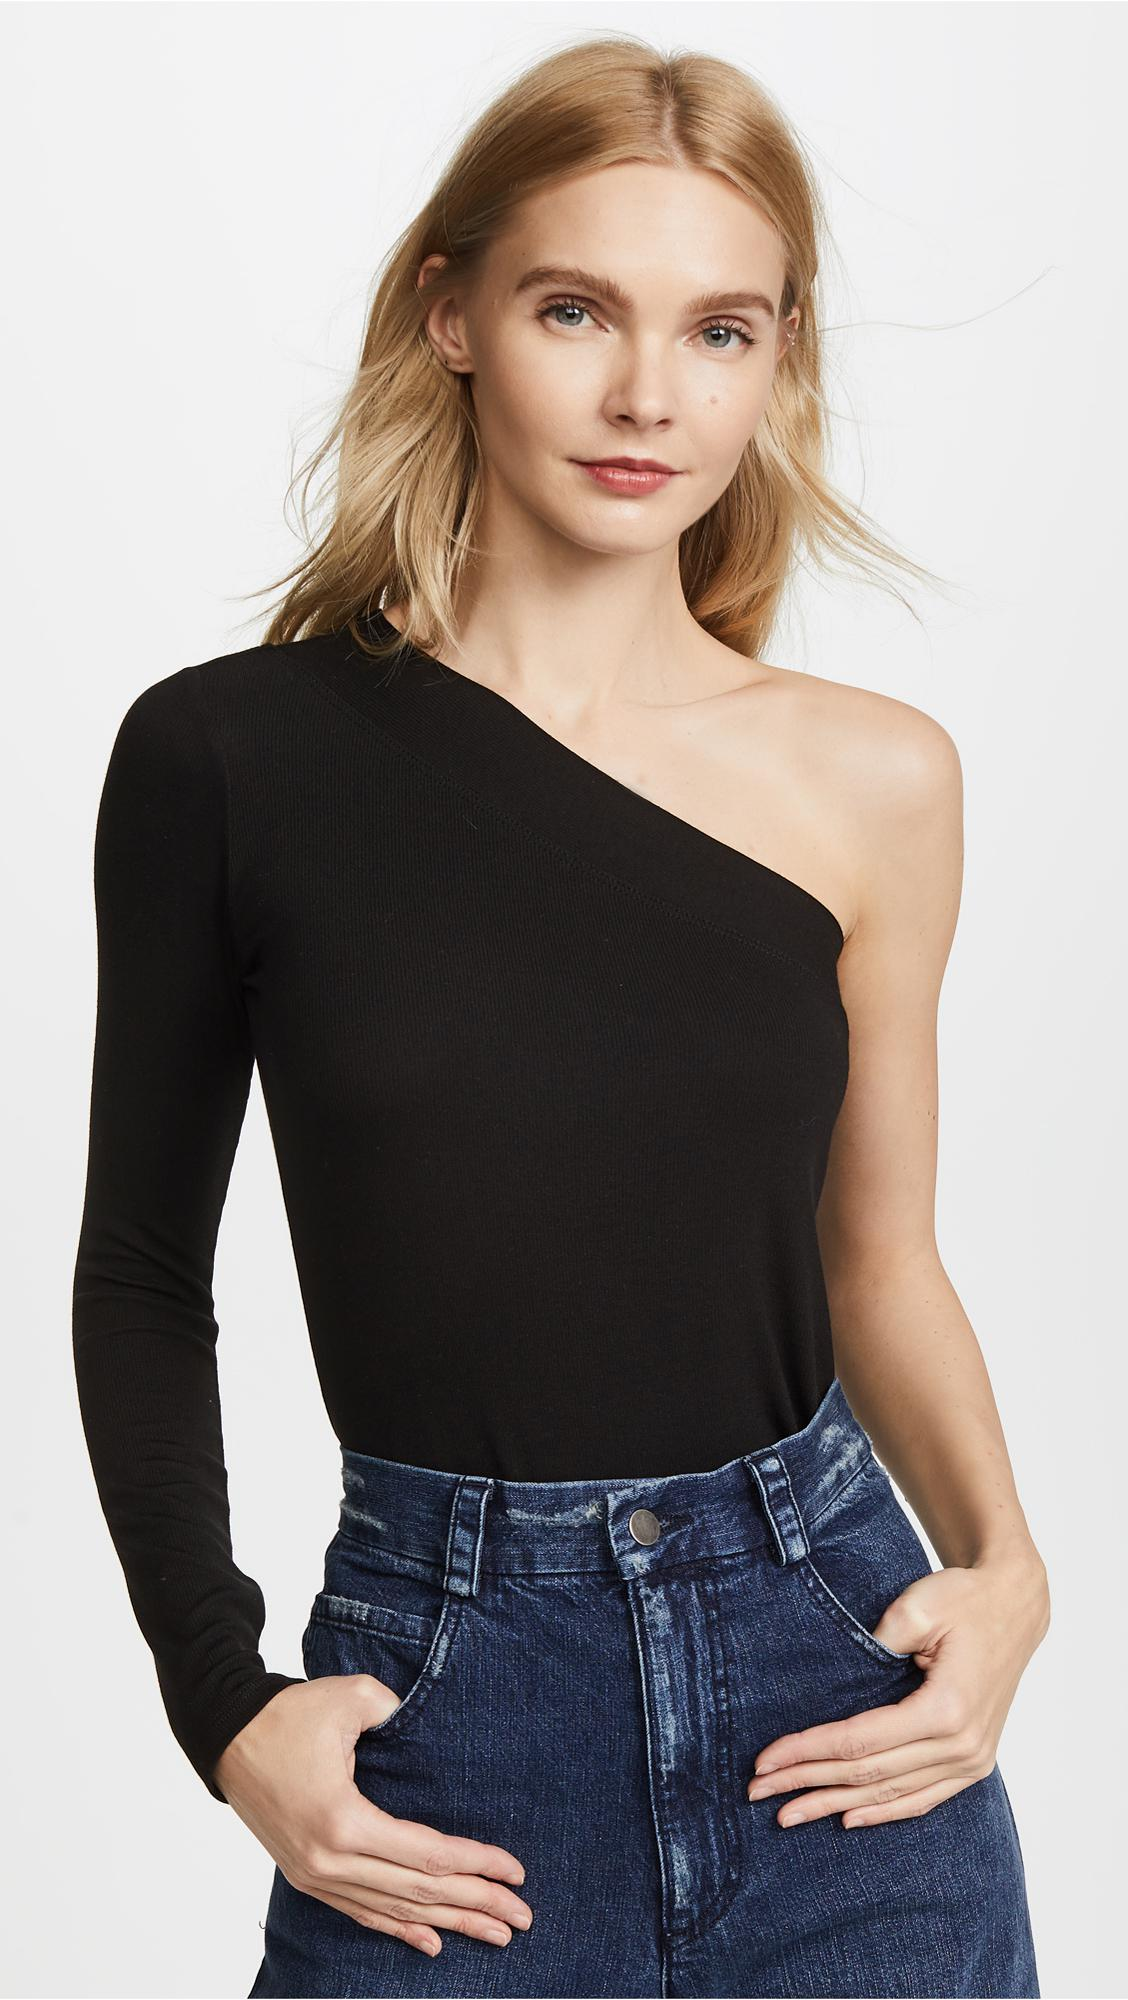 Taking it one step further from suggestion number 10, you can add in some sweat-free layering during the summer by matching your off-the-shoulder tops with cut-out strap bras.